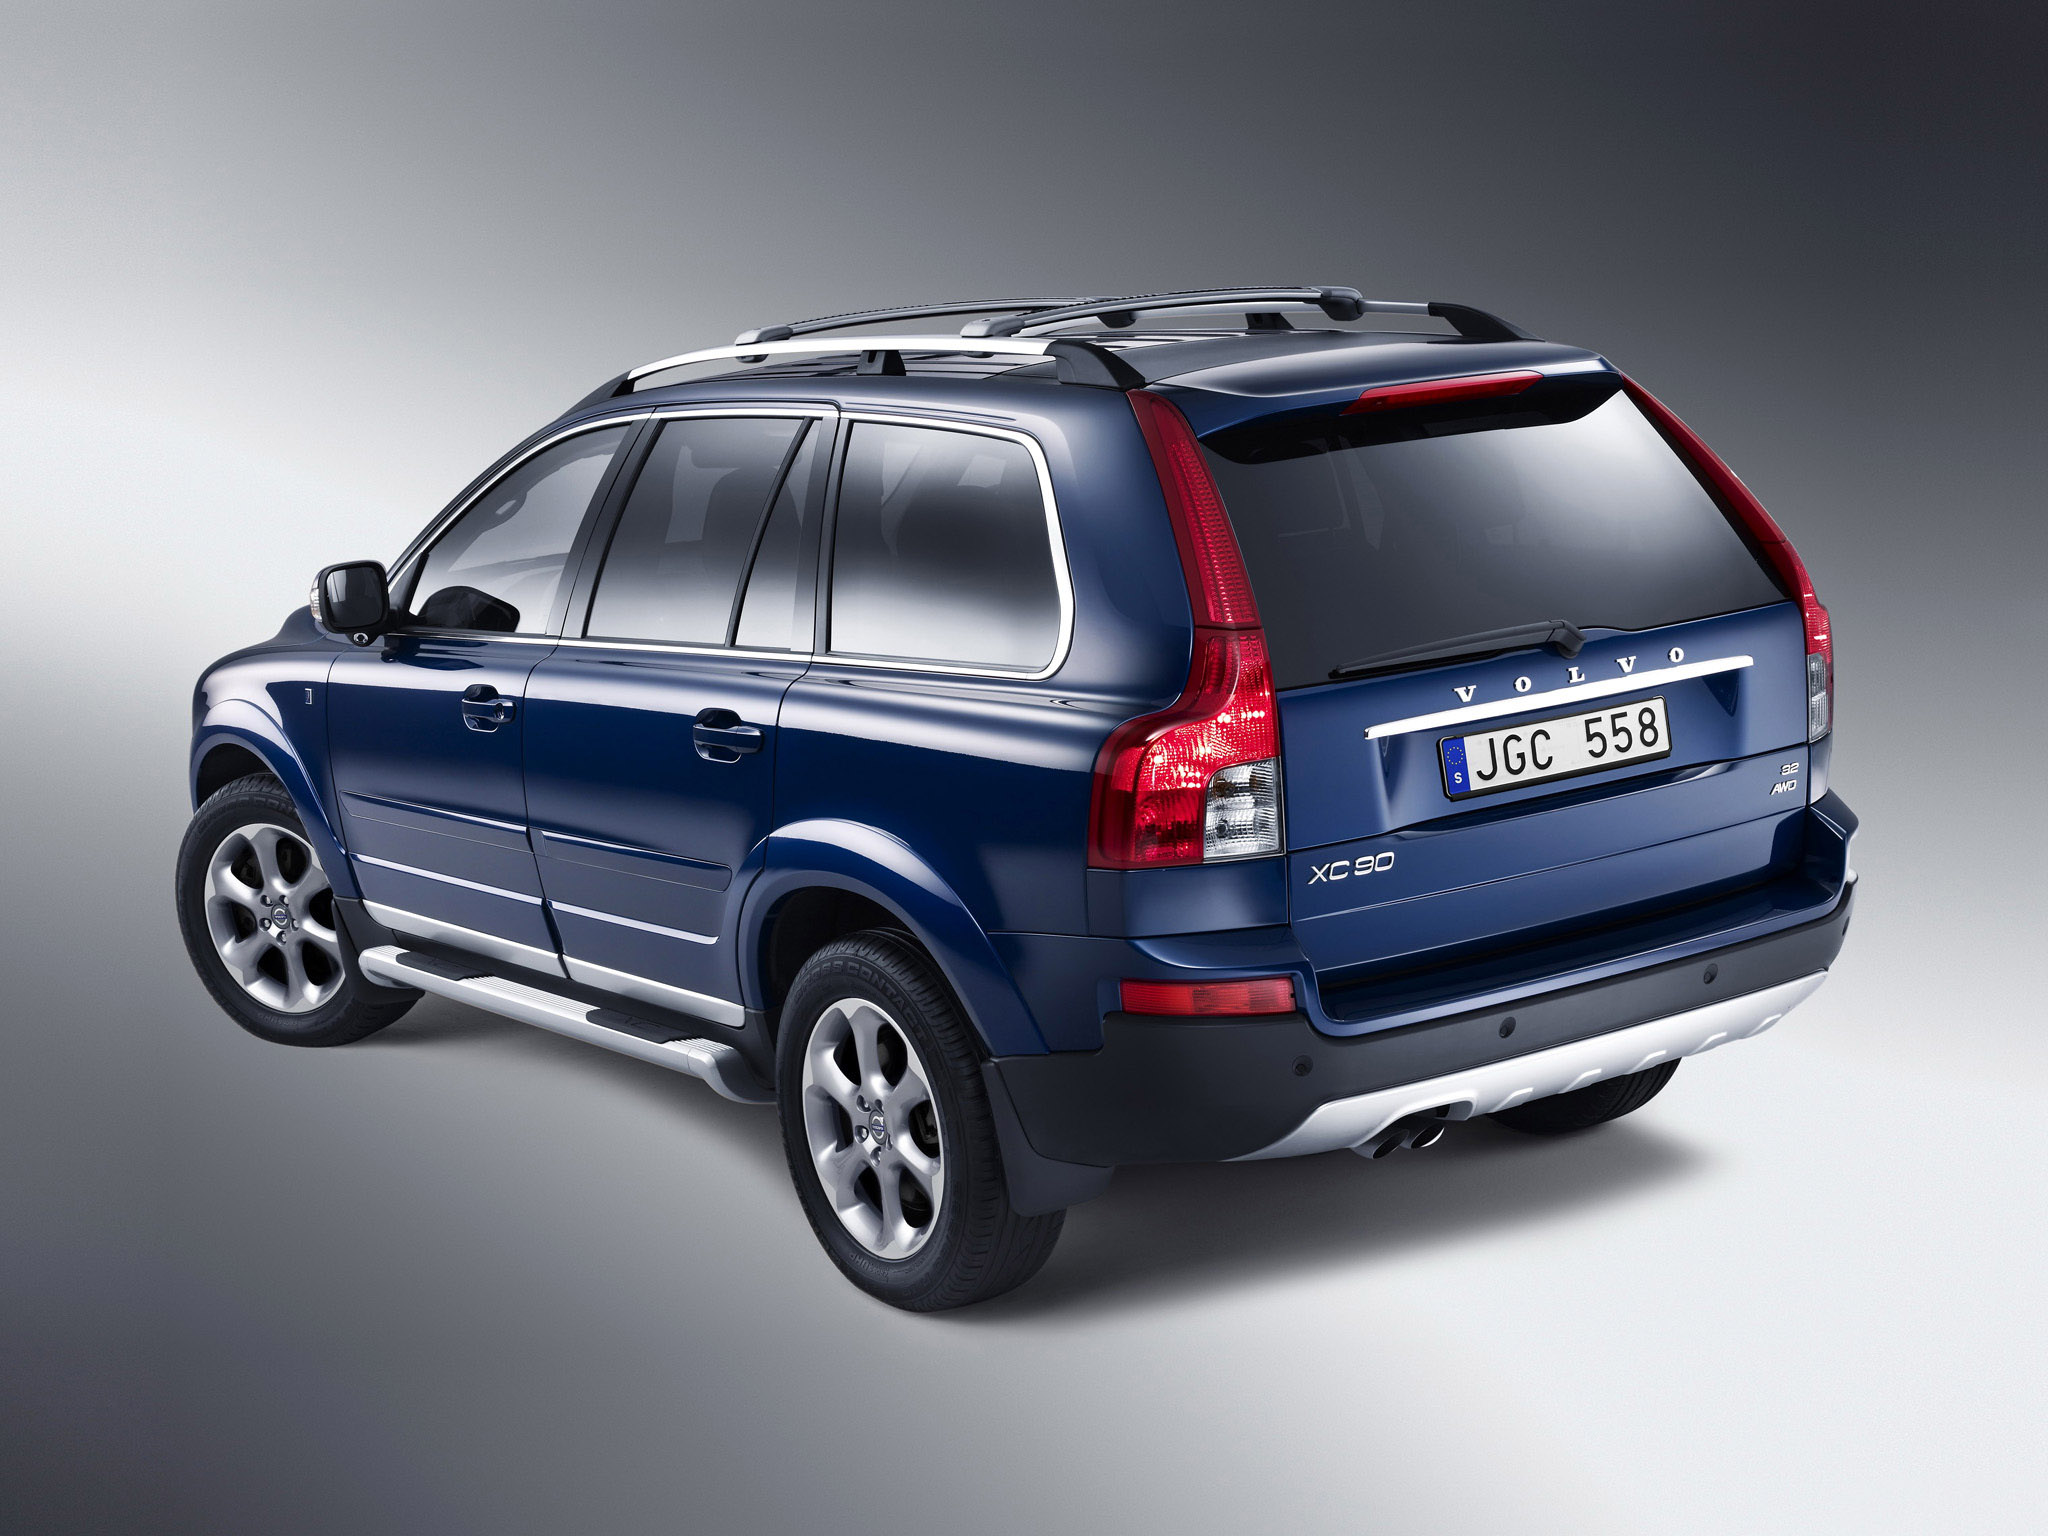 2008 volvo xc90 information and photos zombiedrive. Black Bedroom Furniture Sets. Home Design Ideas